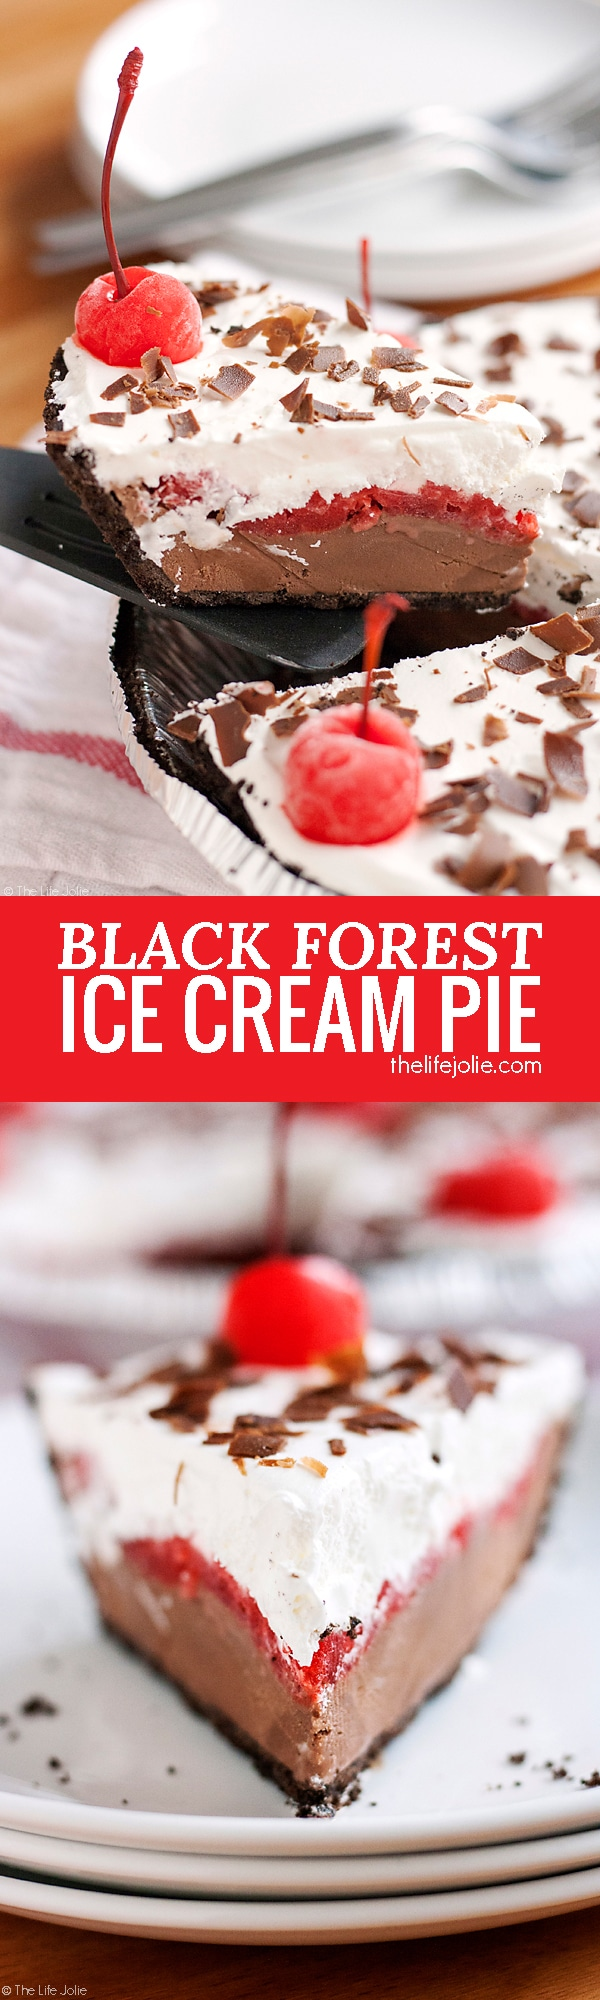 """This Black Forest Ice Cream Pie is a quick and easy no bake dessert recipe. Made with an Oreo Cookie crust, chocolate ice cream, maraschino cherries and whipped topping this pie is a pretty addition to any dessert table! It's perfect for the holidays or to keep in the freezer """"just because""""!"""